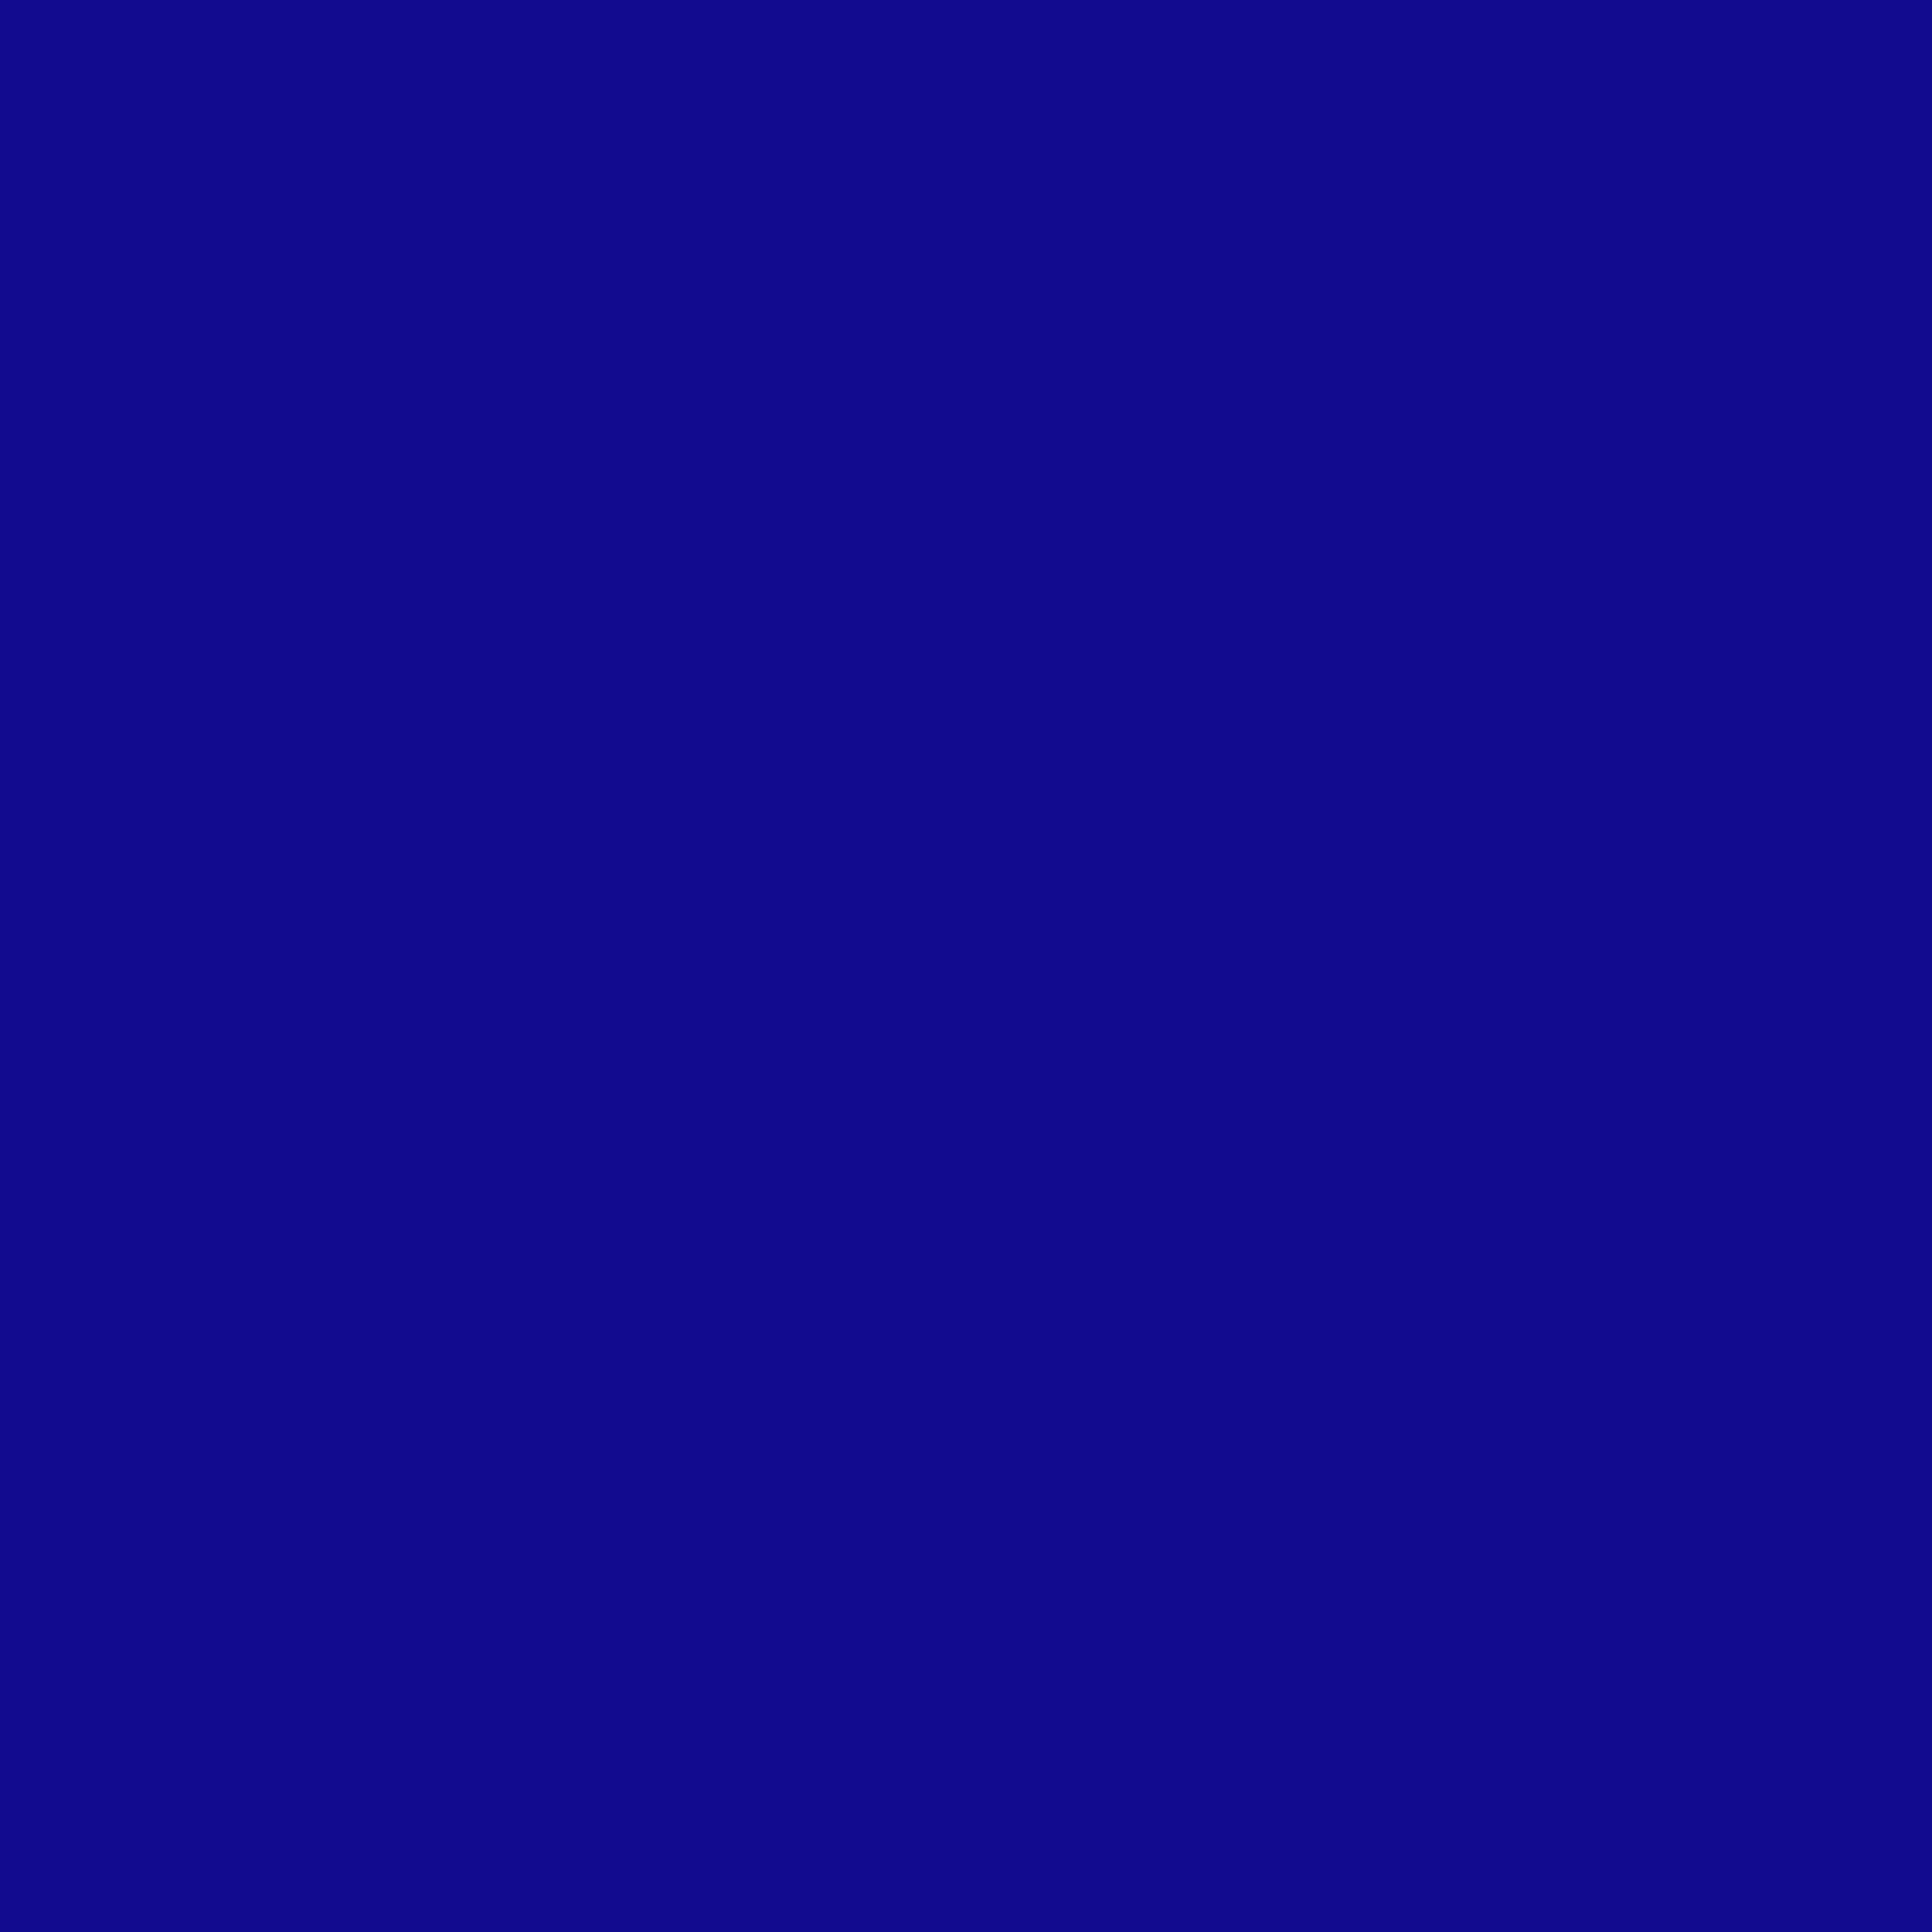 3600x3600 Ultramarine Solid Color Background 3600x3600